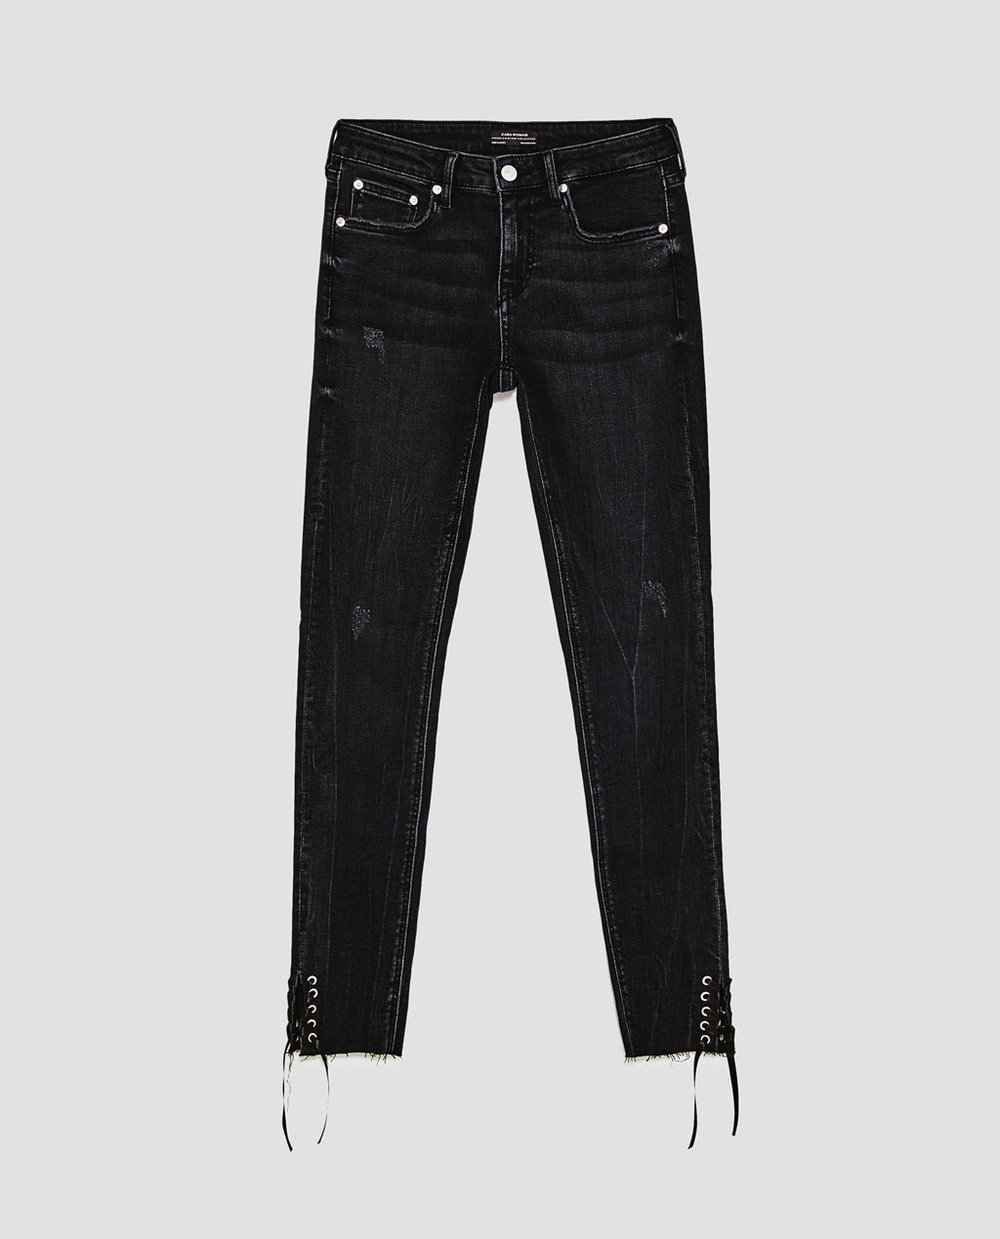 Zara Lace-Up Rostov Jeans (click on image for link)